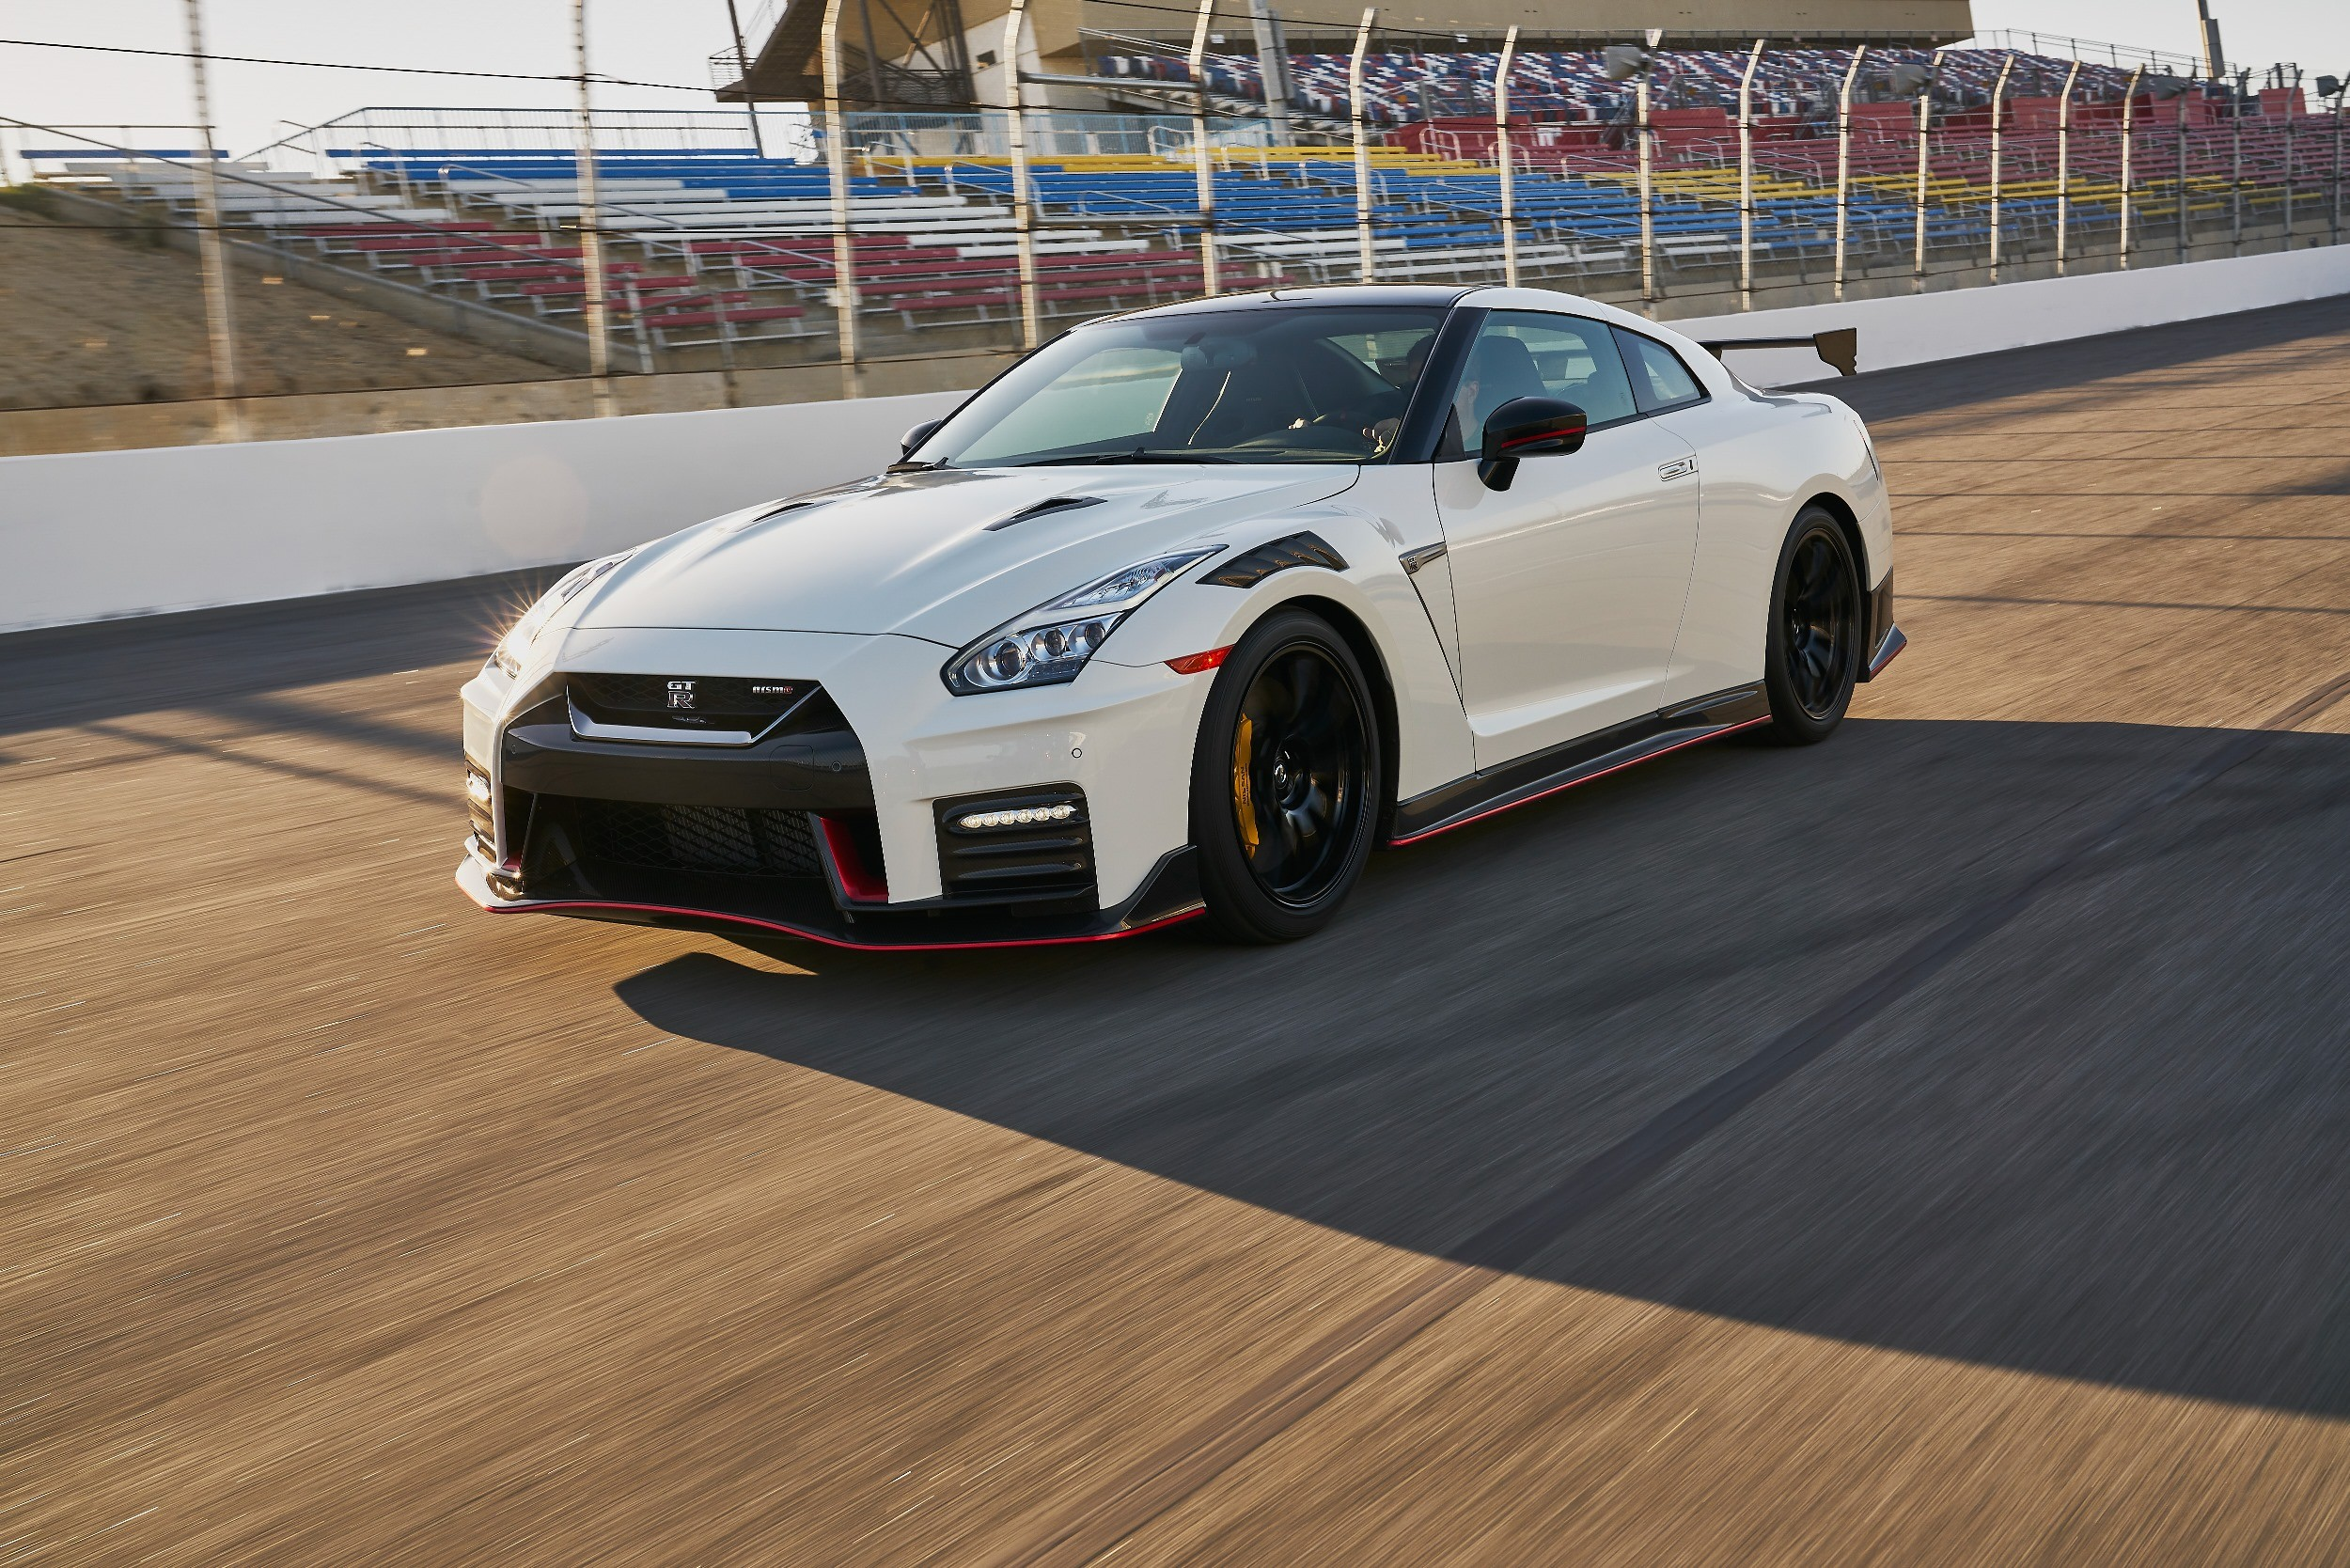 2021 nissan gtr price list revealed only two trim levels